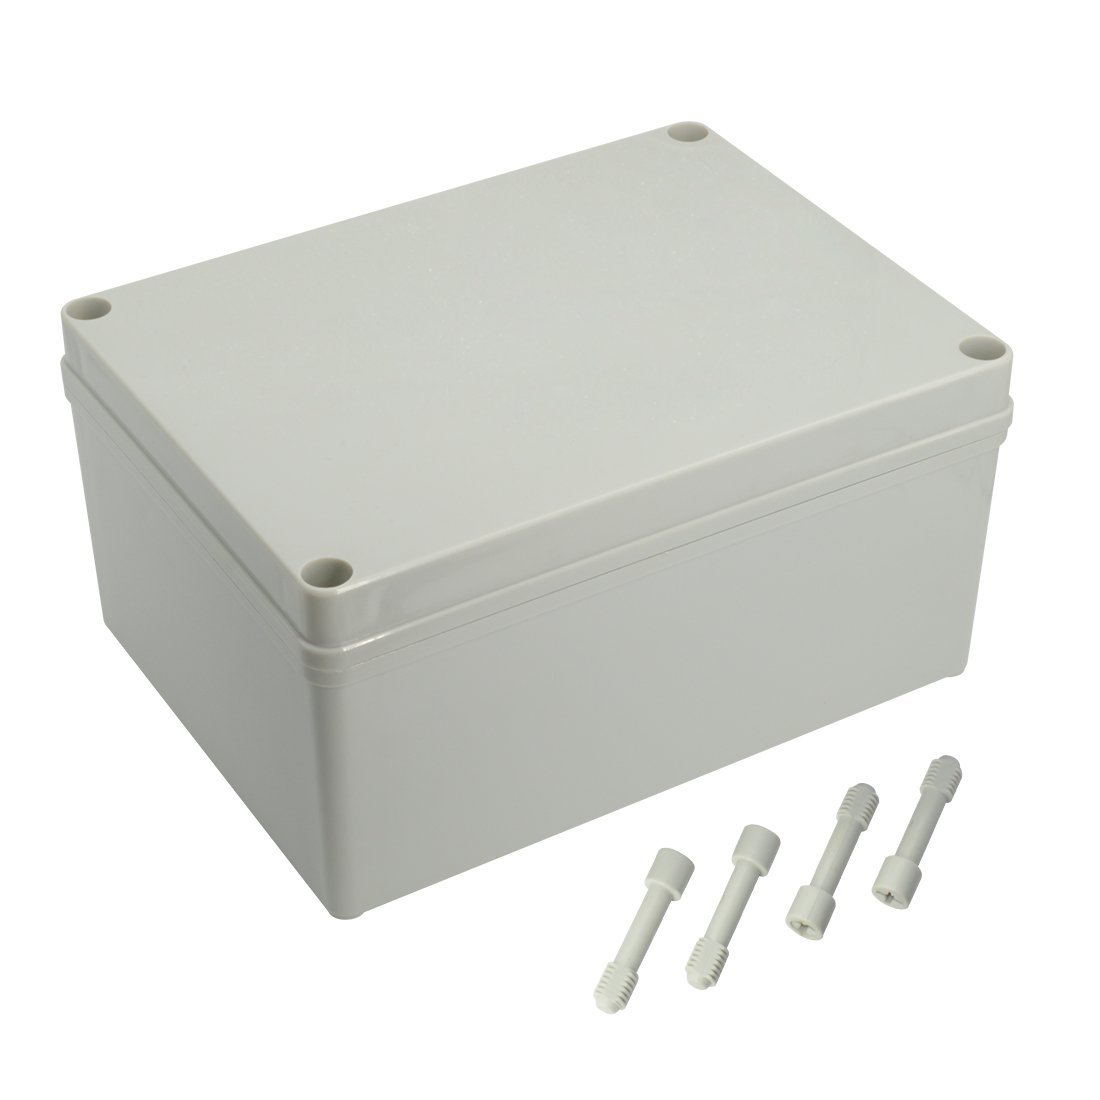 LeMotech Waterproof Dustproof IP67 Junction Box DIY Case Enclosure Gray 7.9 x 5.9 x 3.9 200mm x 150mm x 100mm